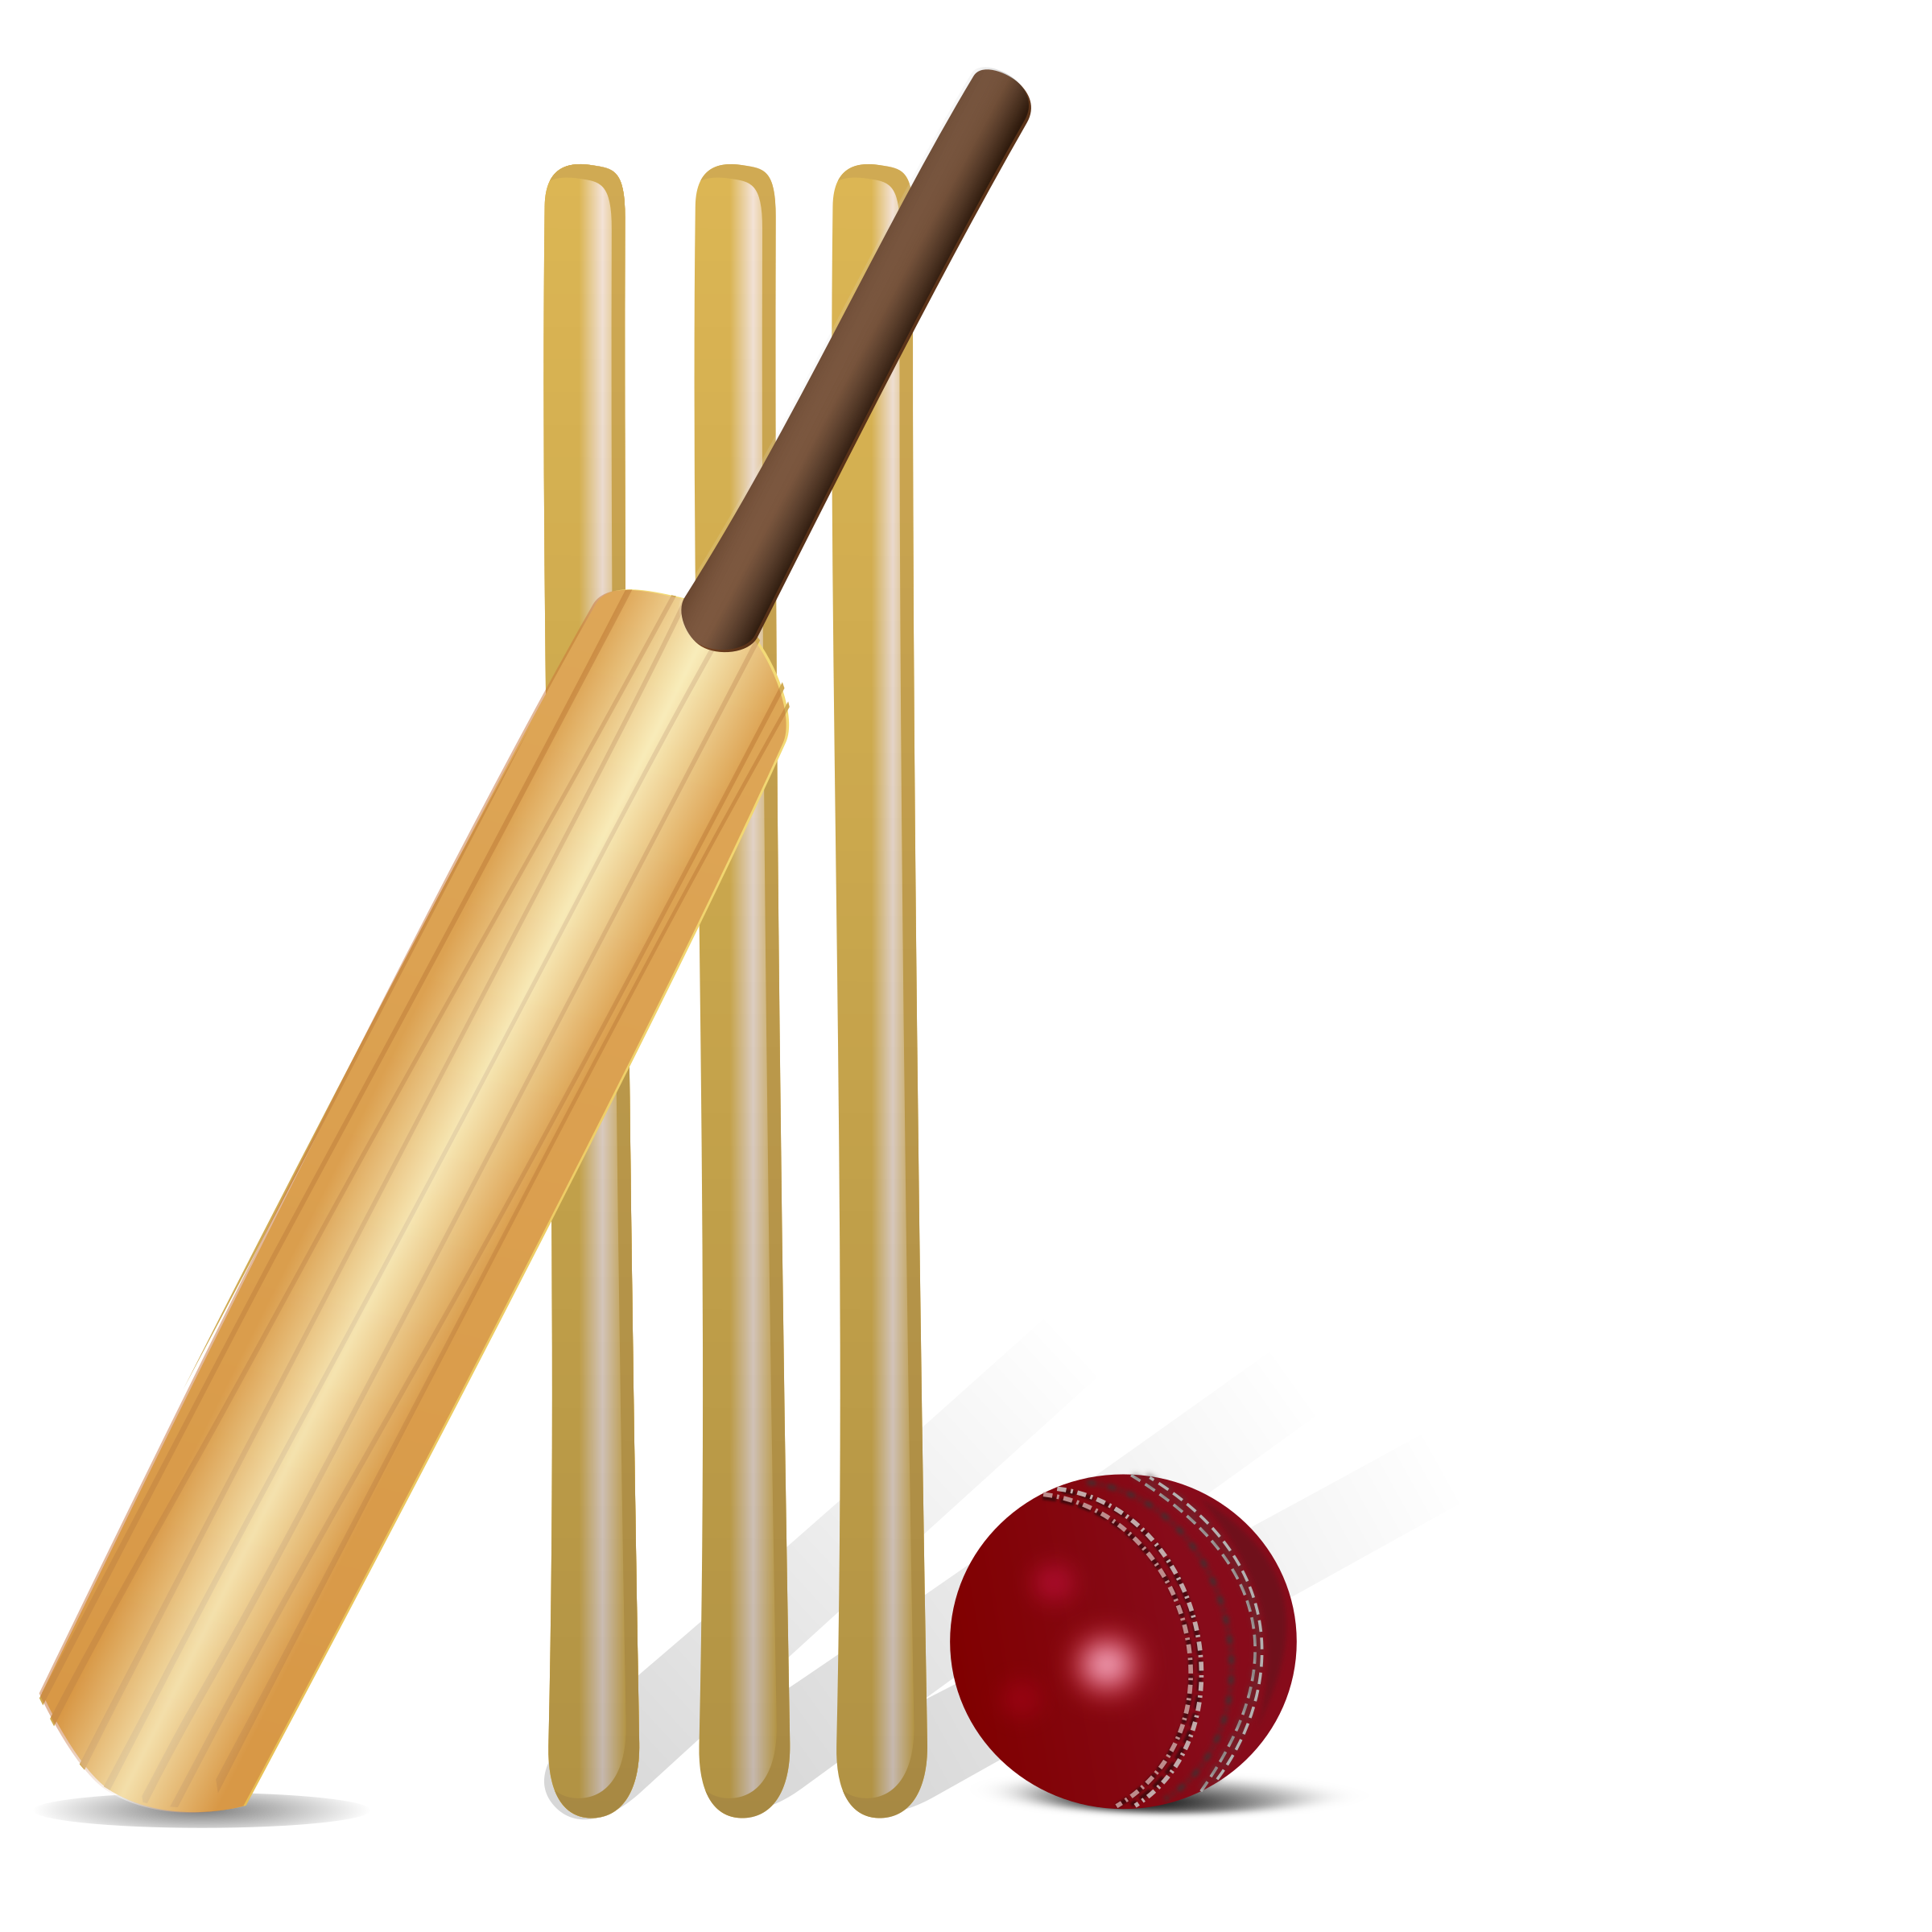 Stamp clipart cricket. At getdrawings com free